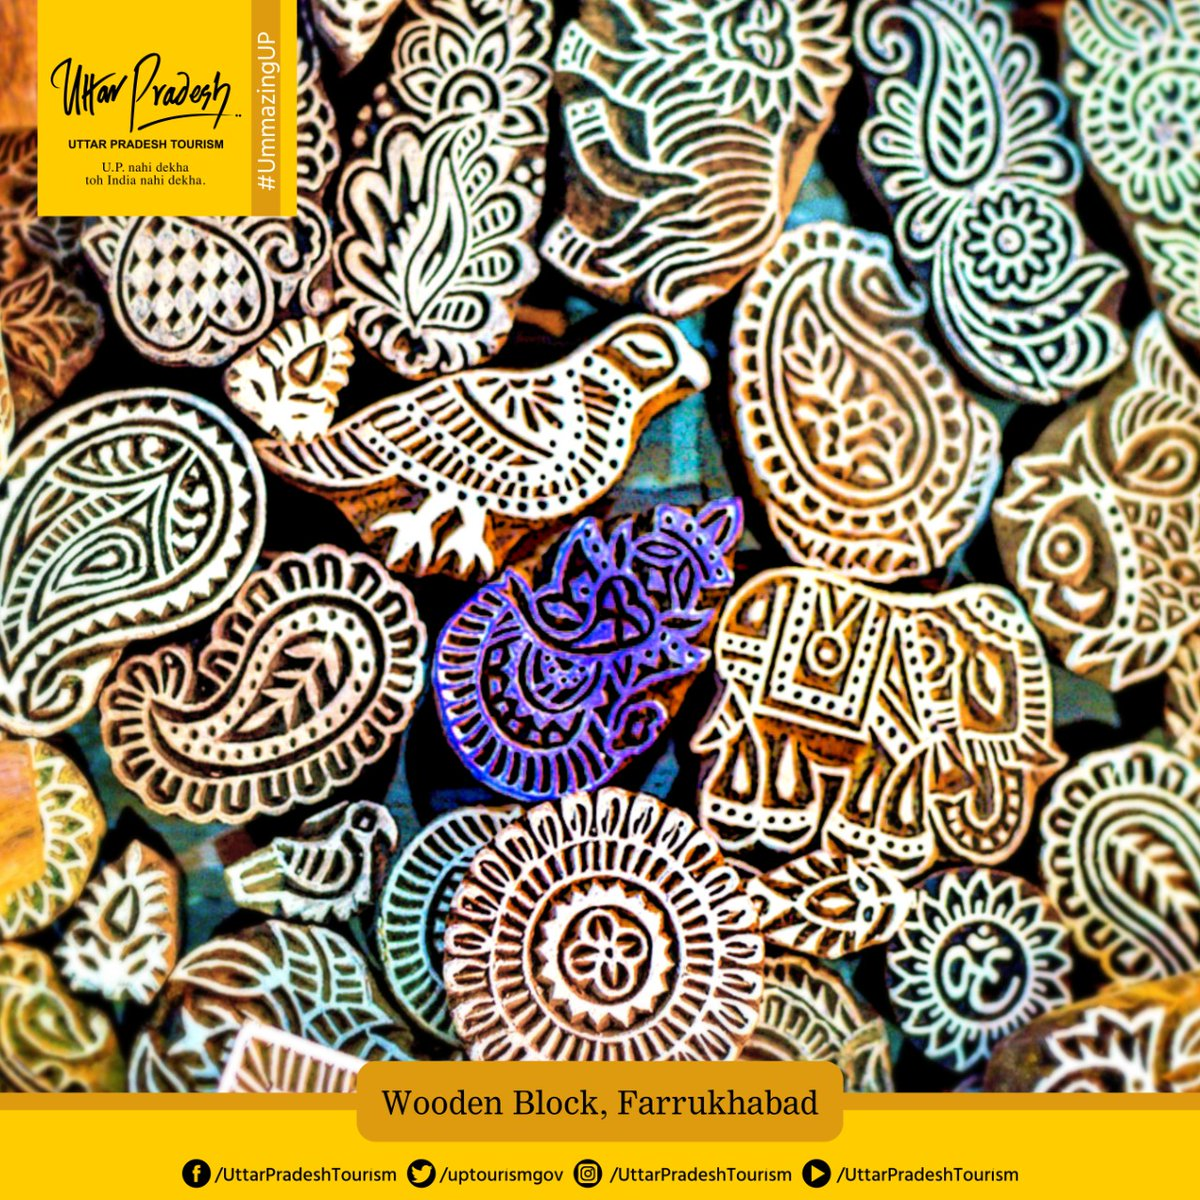 Farrukhabad is known for its block printing (made of wood & brass). These blocks are used on various items including blanket covers, shawls, sarees, suits, scarfs, etc. One can visit & enjoy the colorful magic of block printing here. #DekhoApnaDesh #Vocal4Local  @uptourismgov